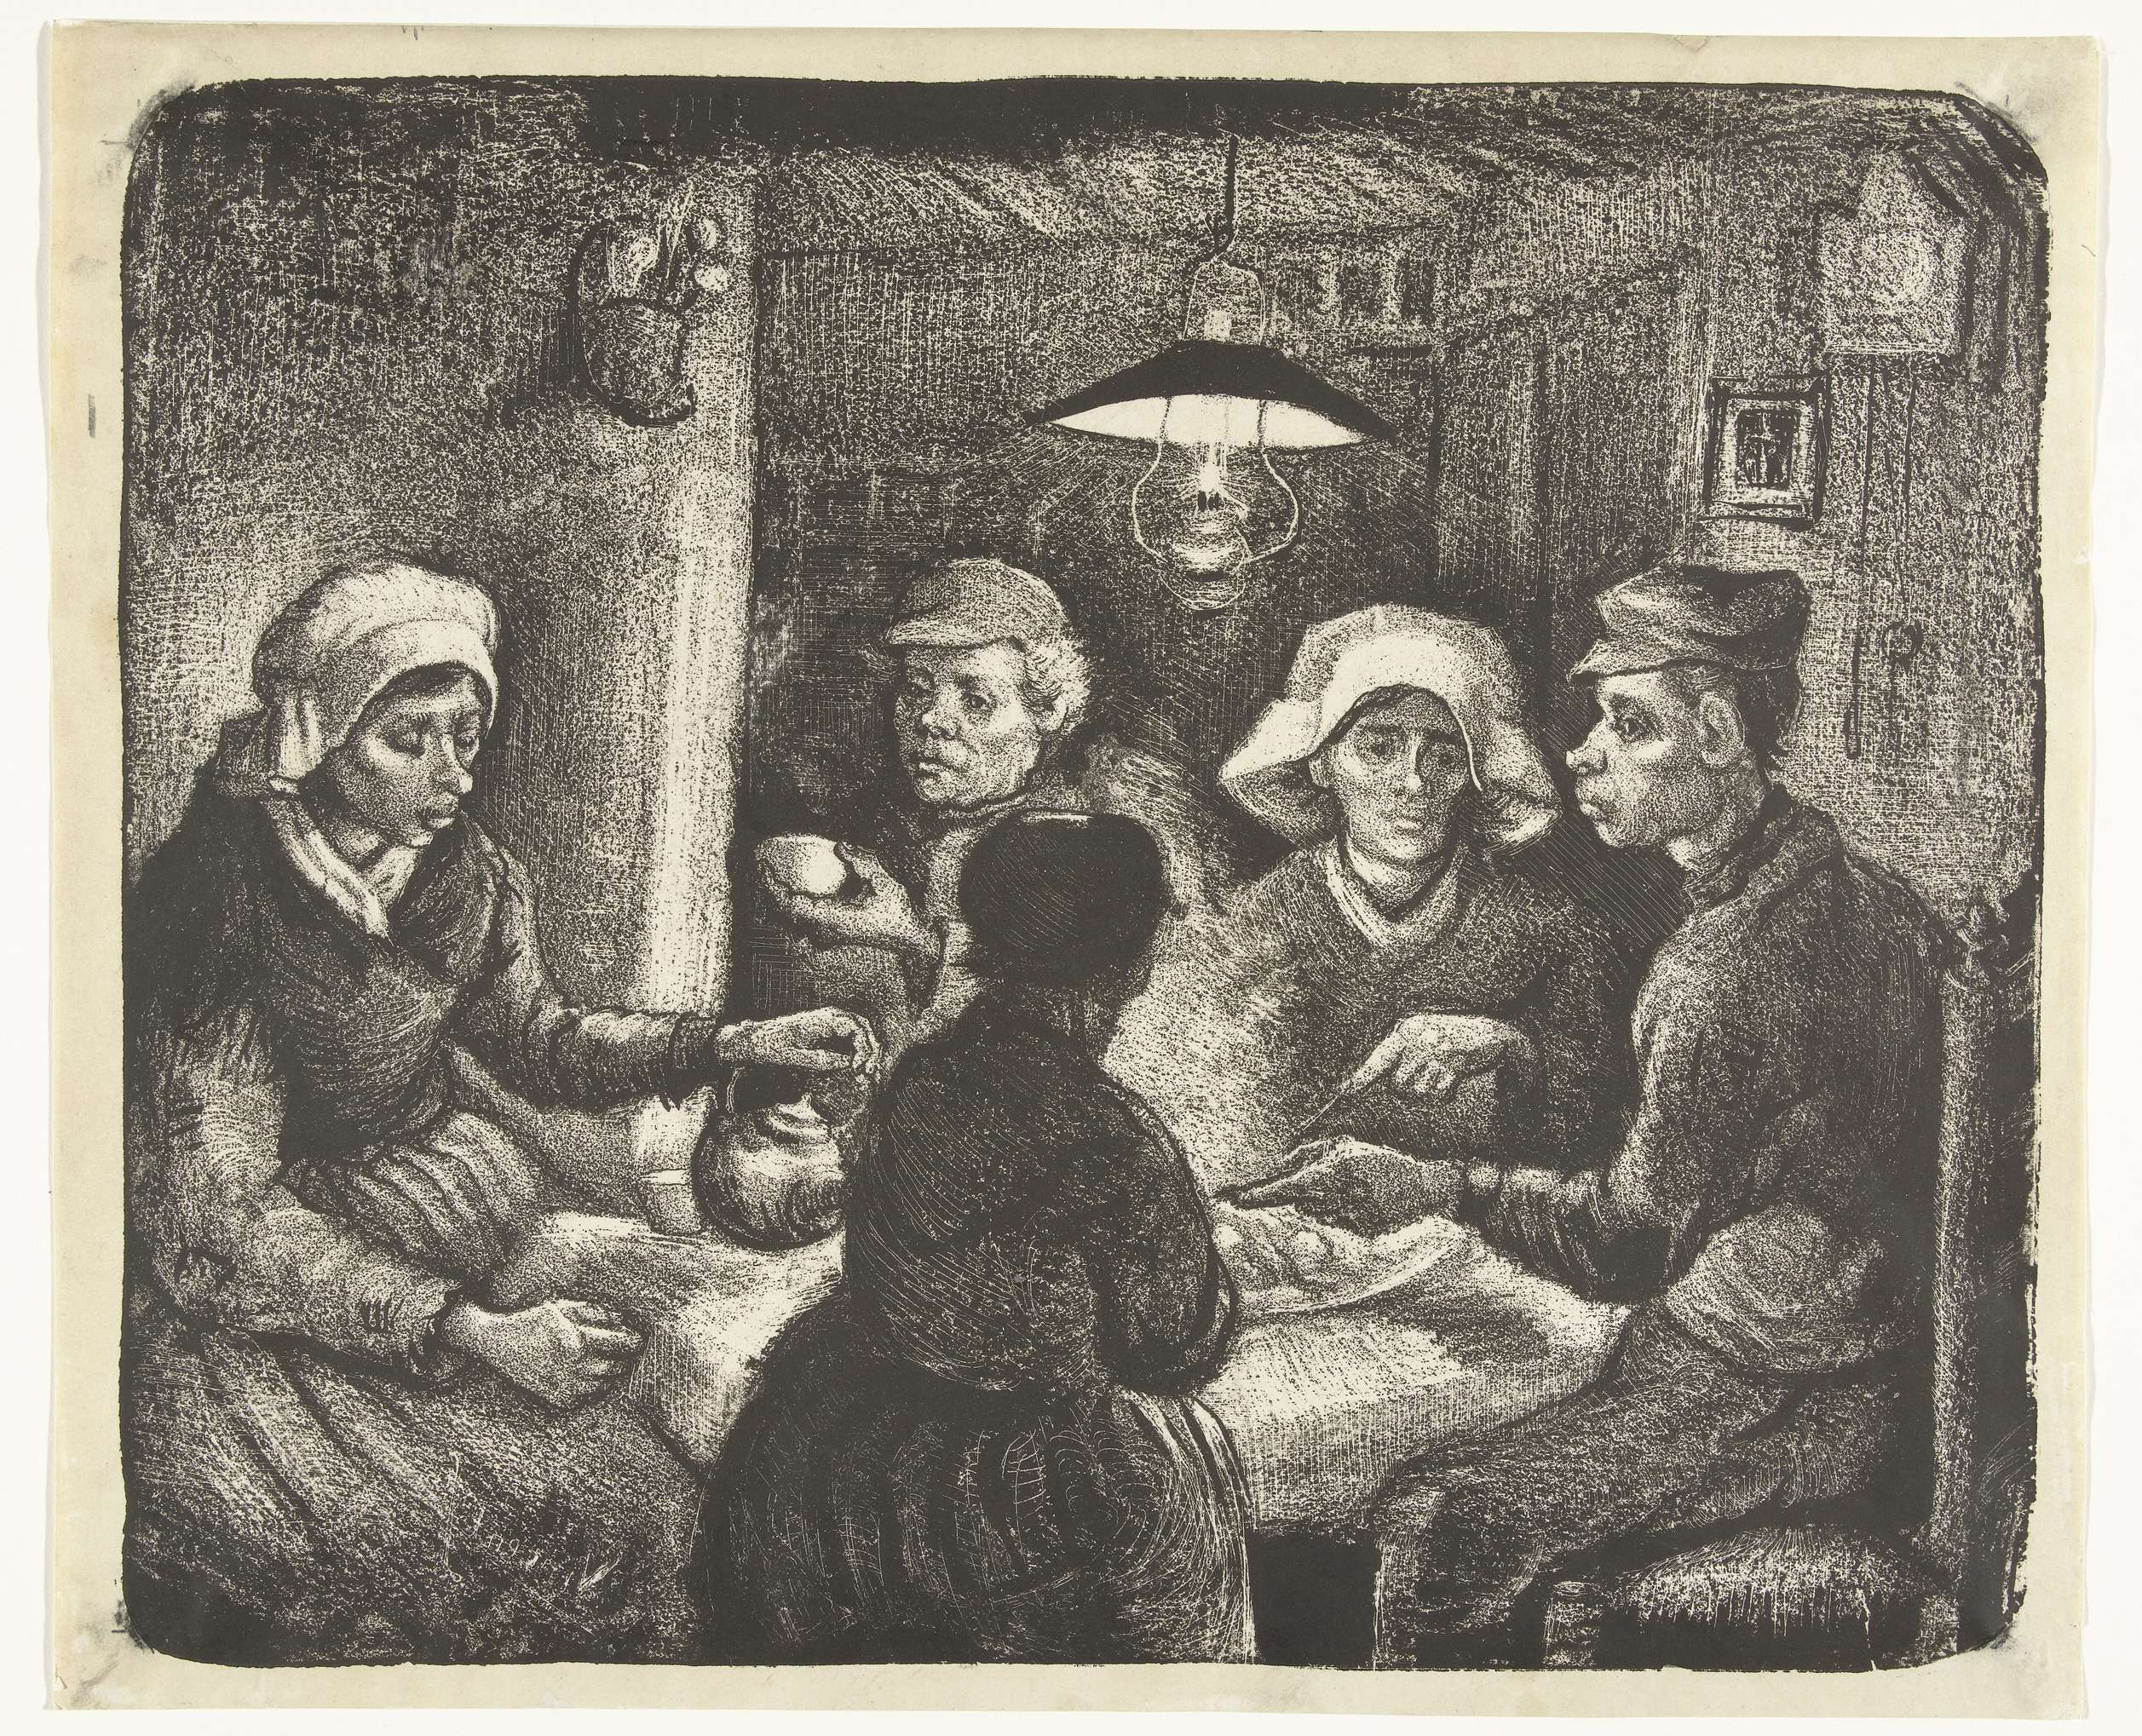 Datei:The Potato Eaters - Lithography by Vincent van Gogh ...